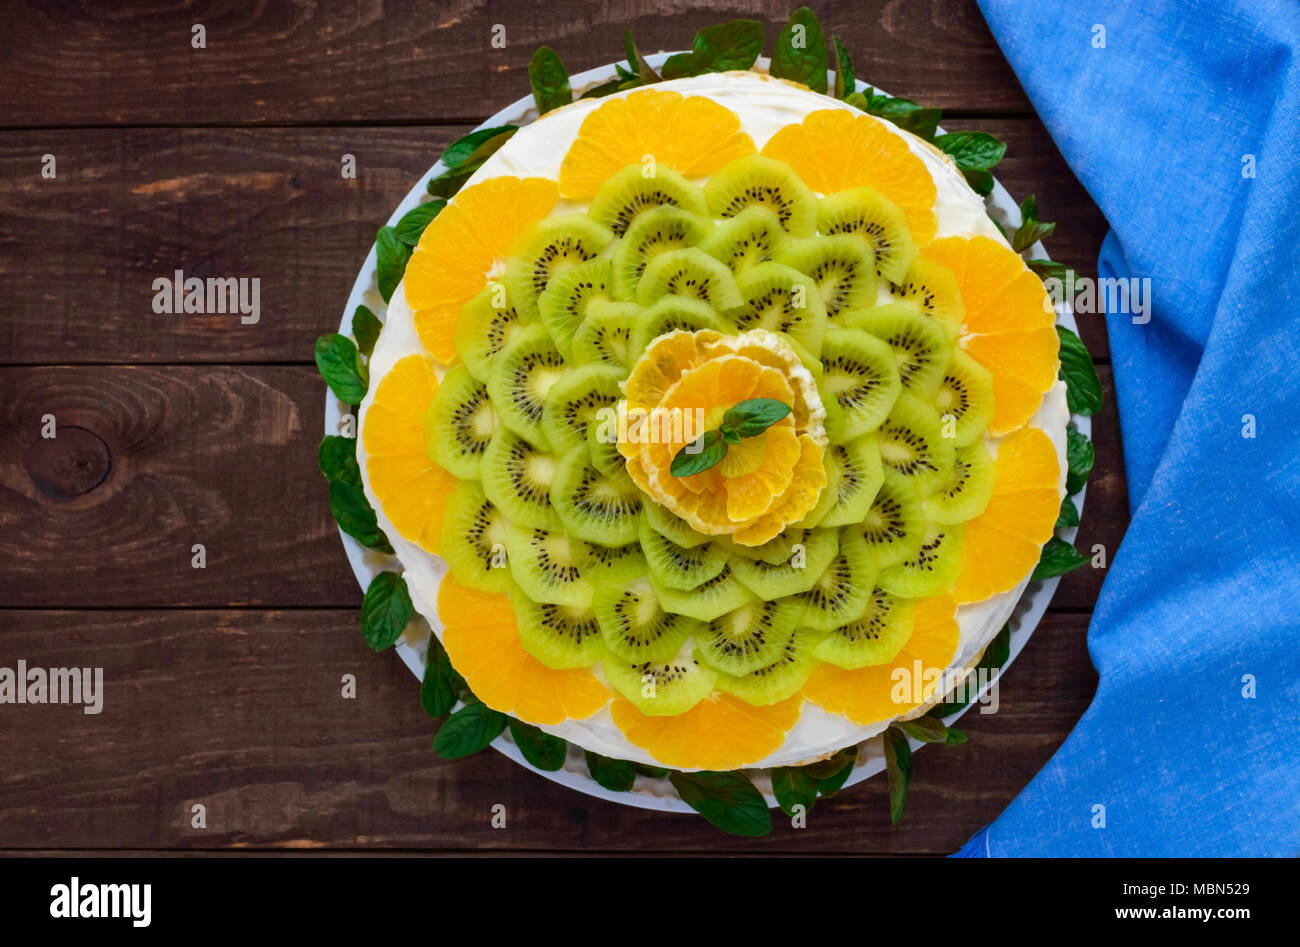 Bright round festive fruit cake decorated with kiwi, orange, mint. The top view. - Stock Image